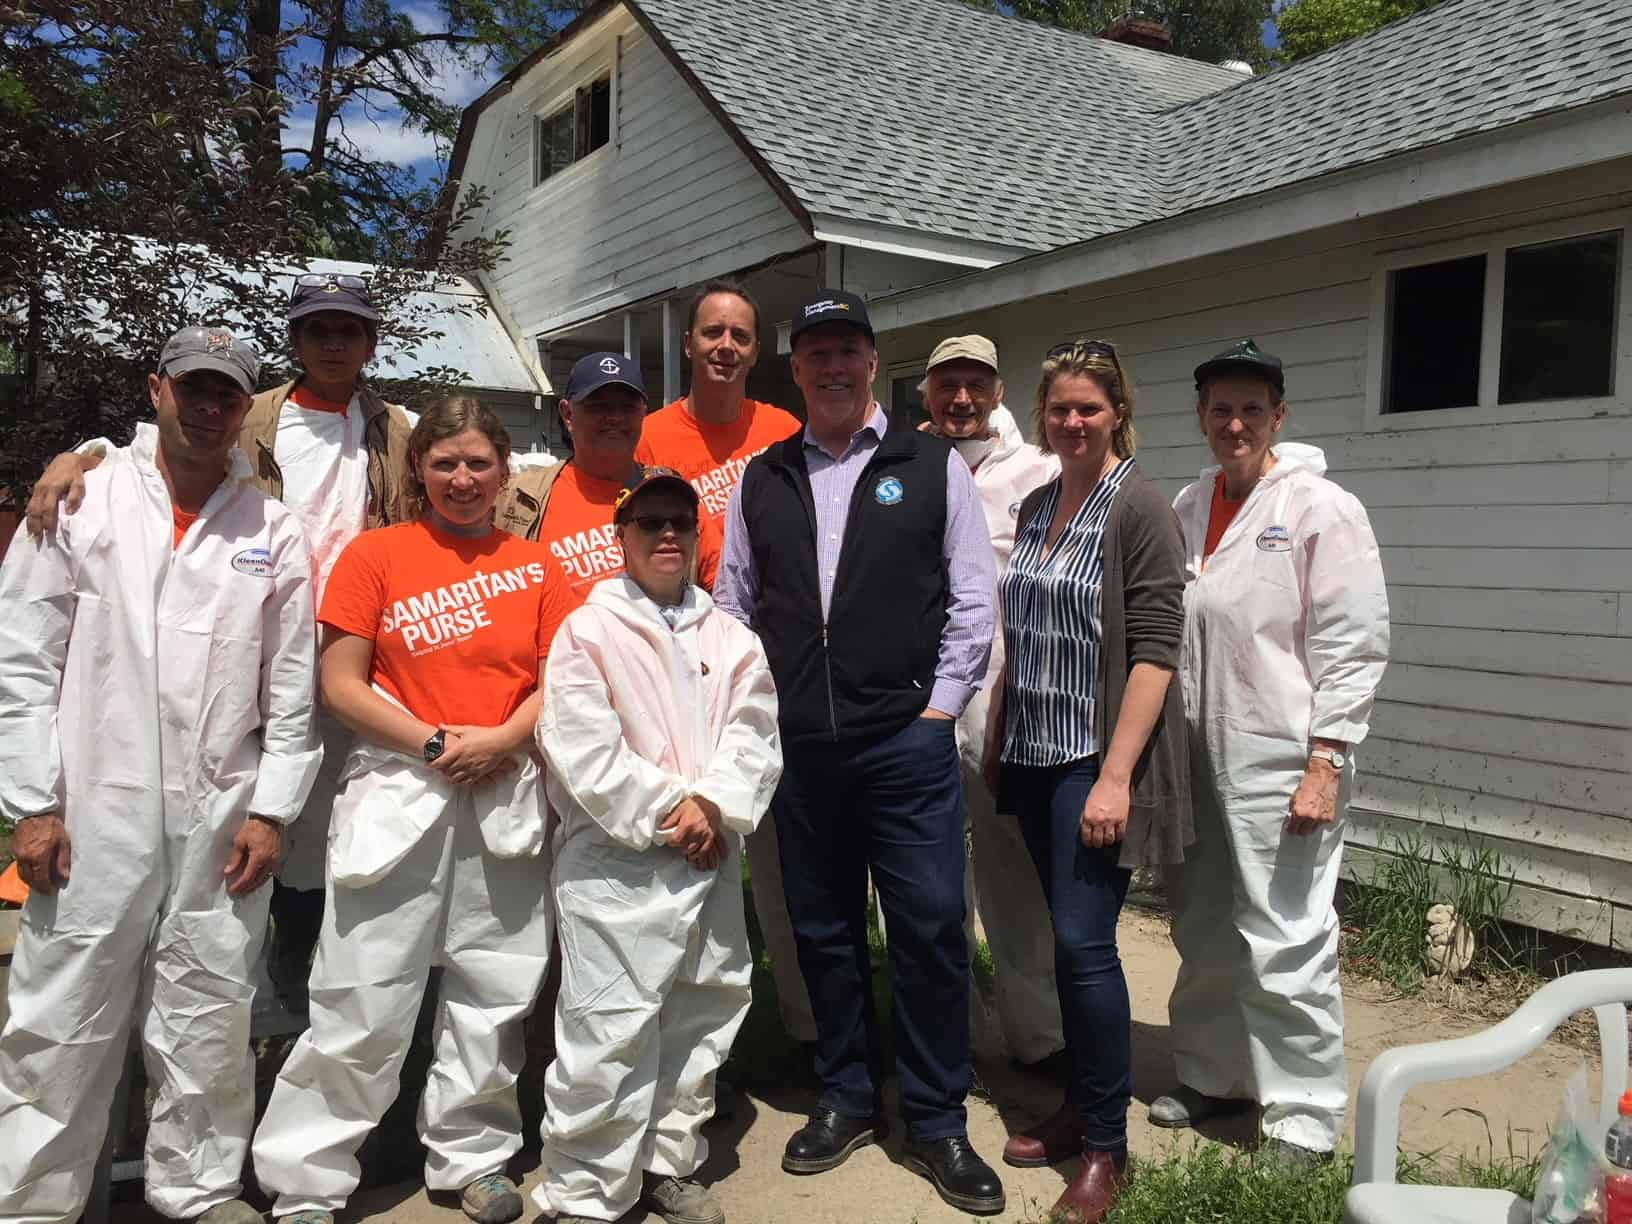 B.C. Premier John Horgan visited one of the homes we were working at and expressed his appreciation to Samaritan's Purse and to the volunteers.